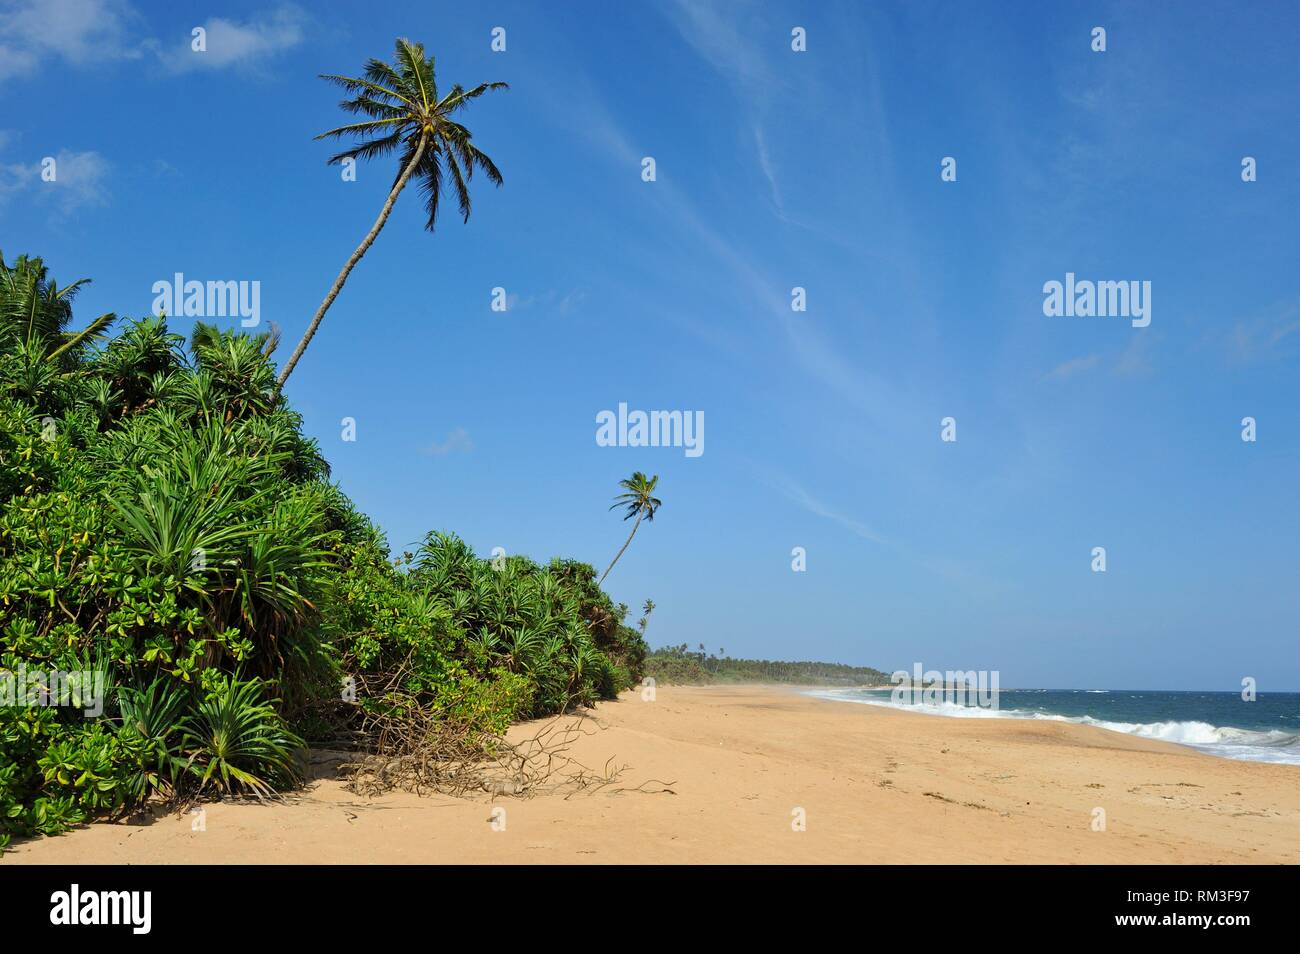 Tangalle beach, Sri Lanka, Indian subcontinent, South Asia. Stock Photo